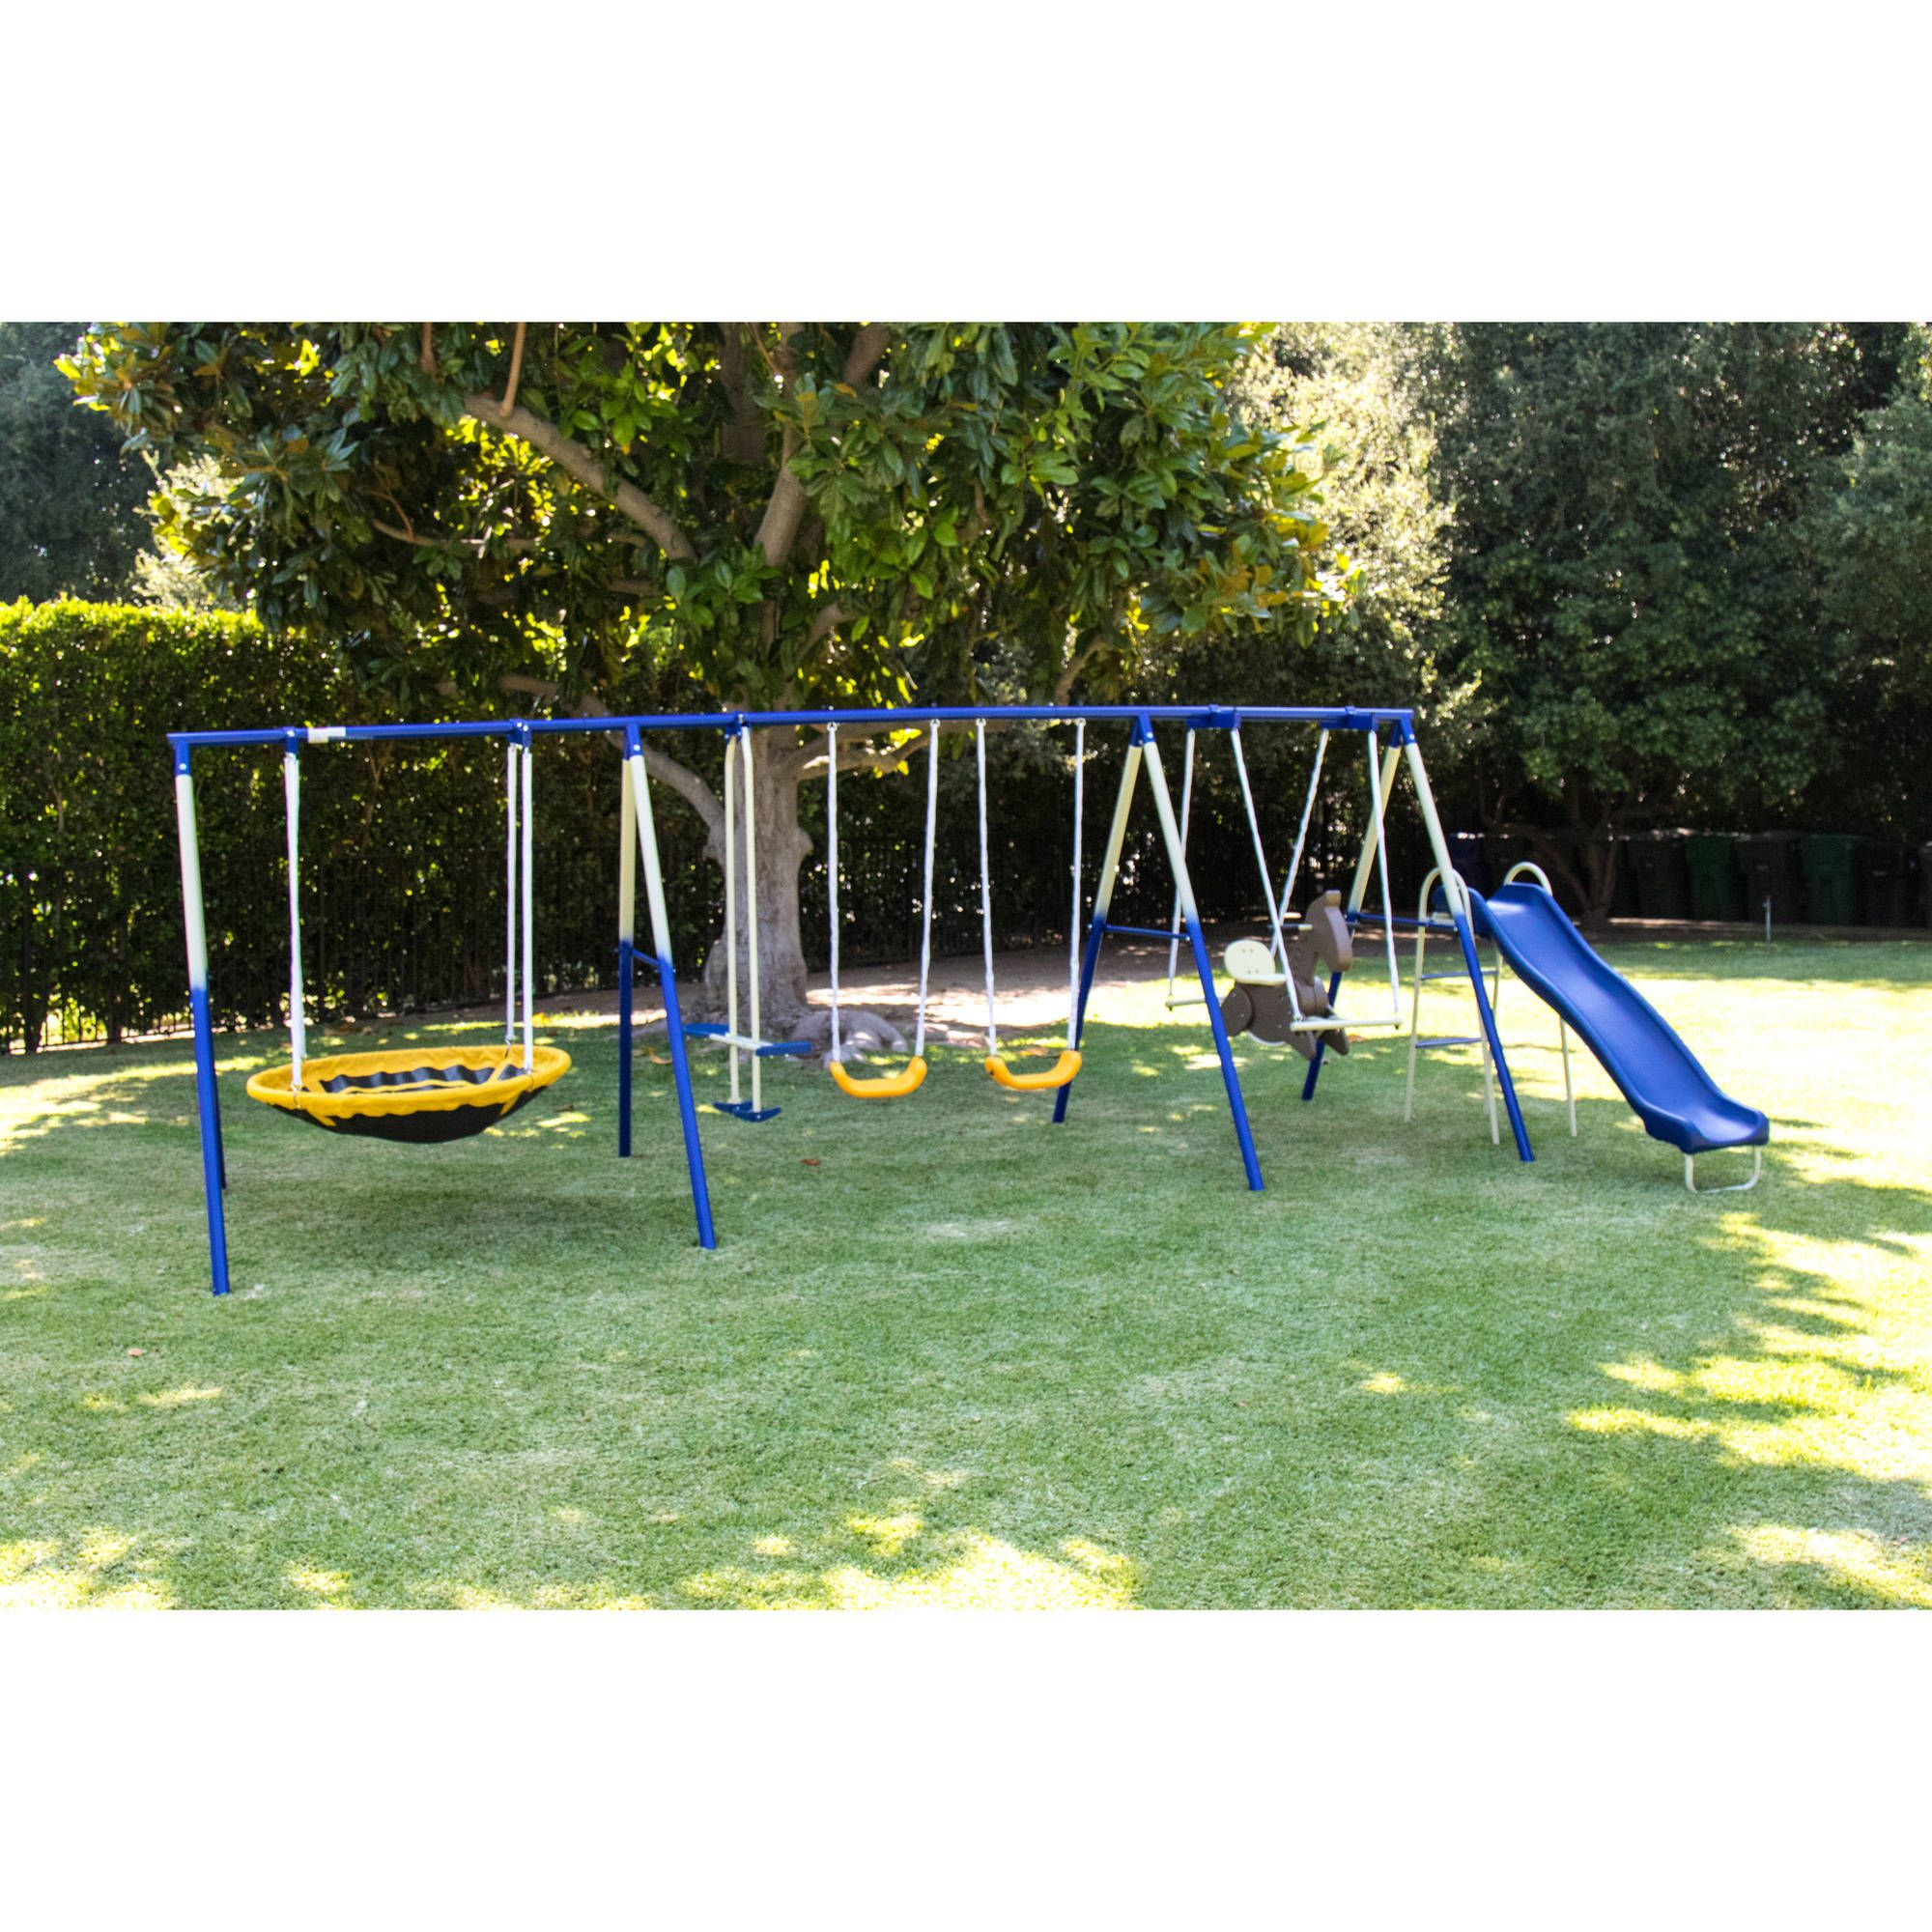 Sportspower Outdoor Super 8 Fun Metal Swing And Slide Set Walmart